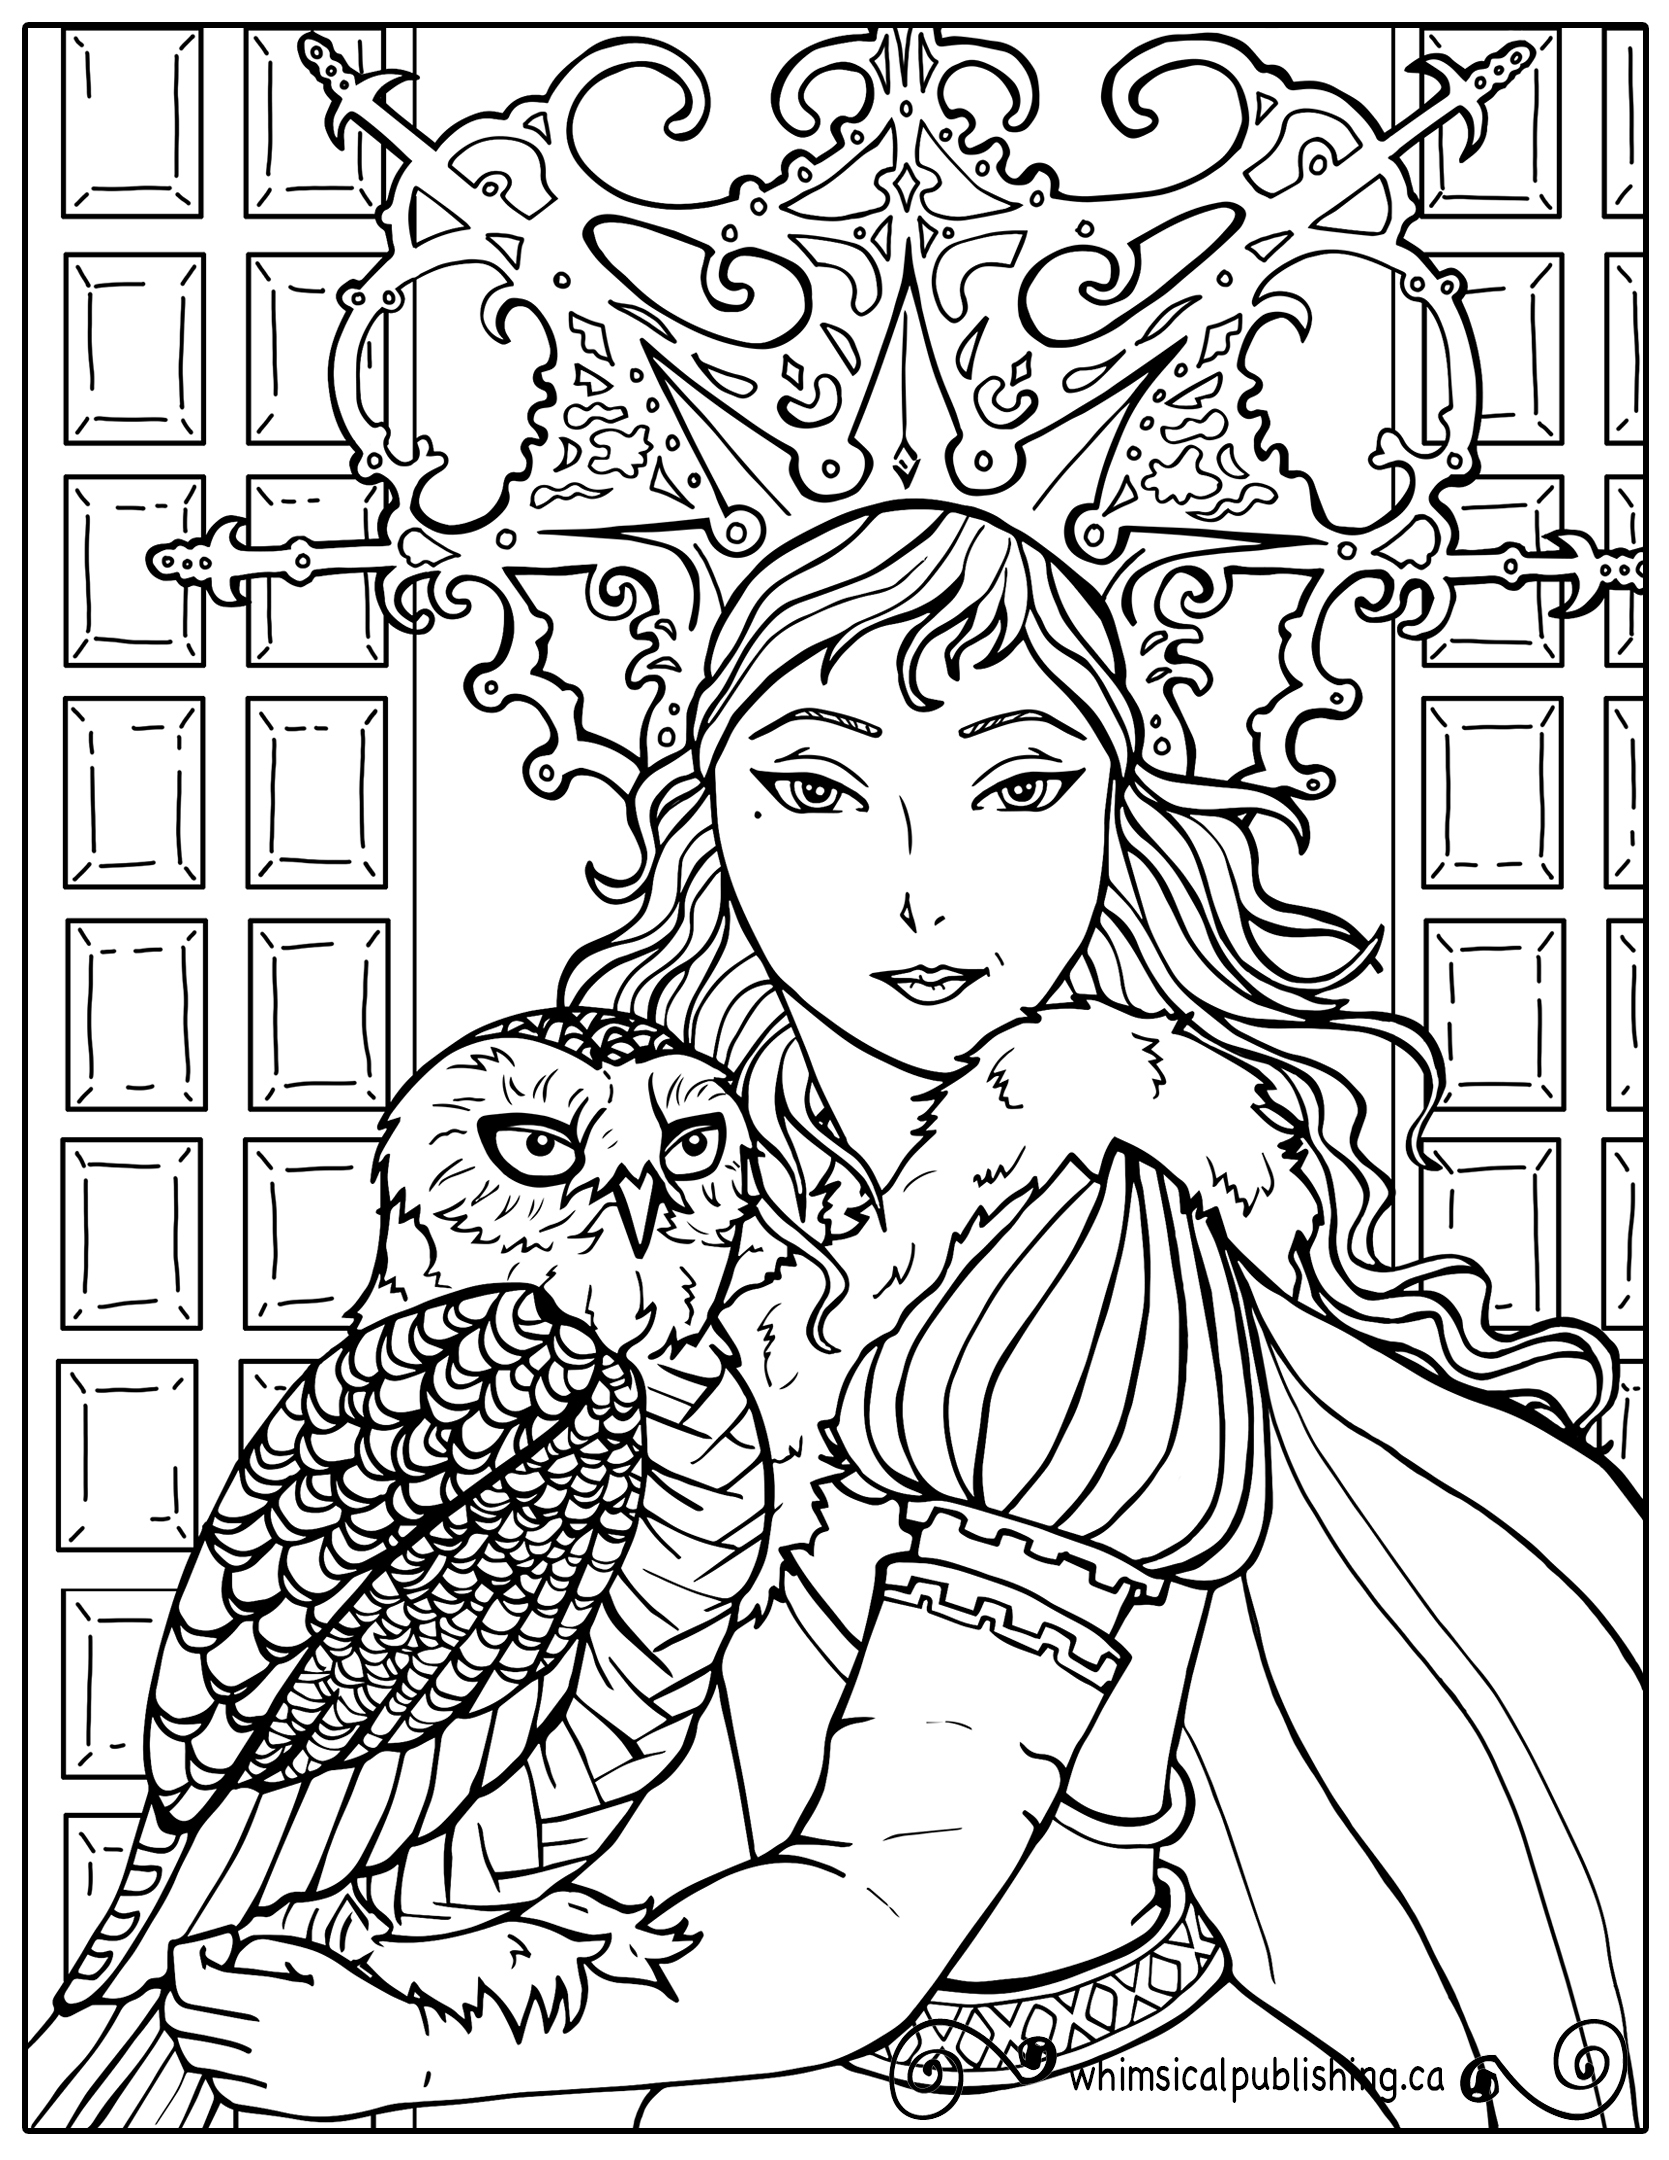 free coloring pages online how to find the best coloring pages online coloring pages free pages online coloring